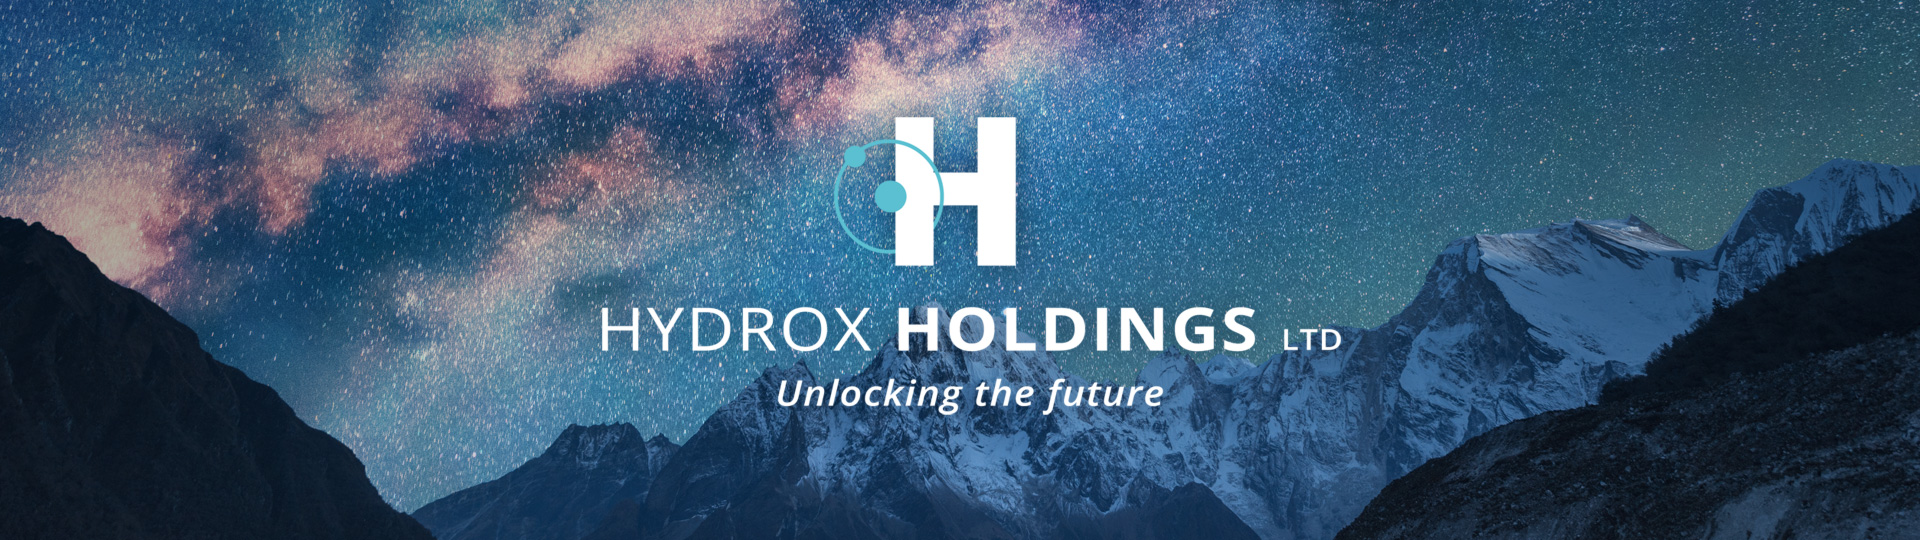 About Hydrox Holdings